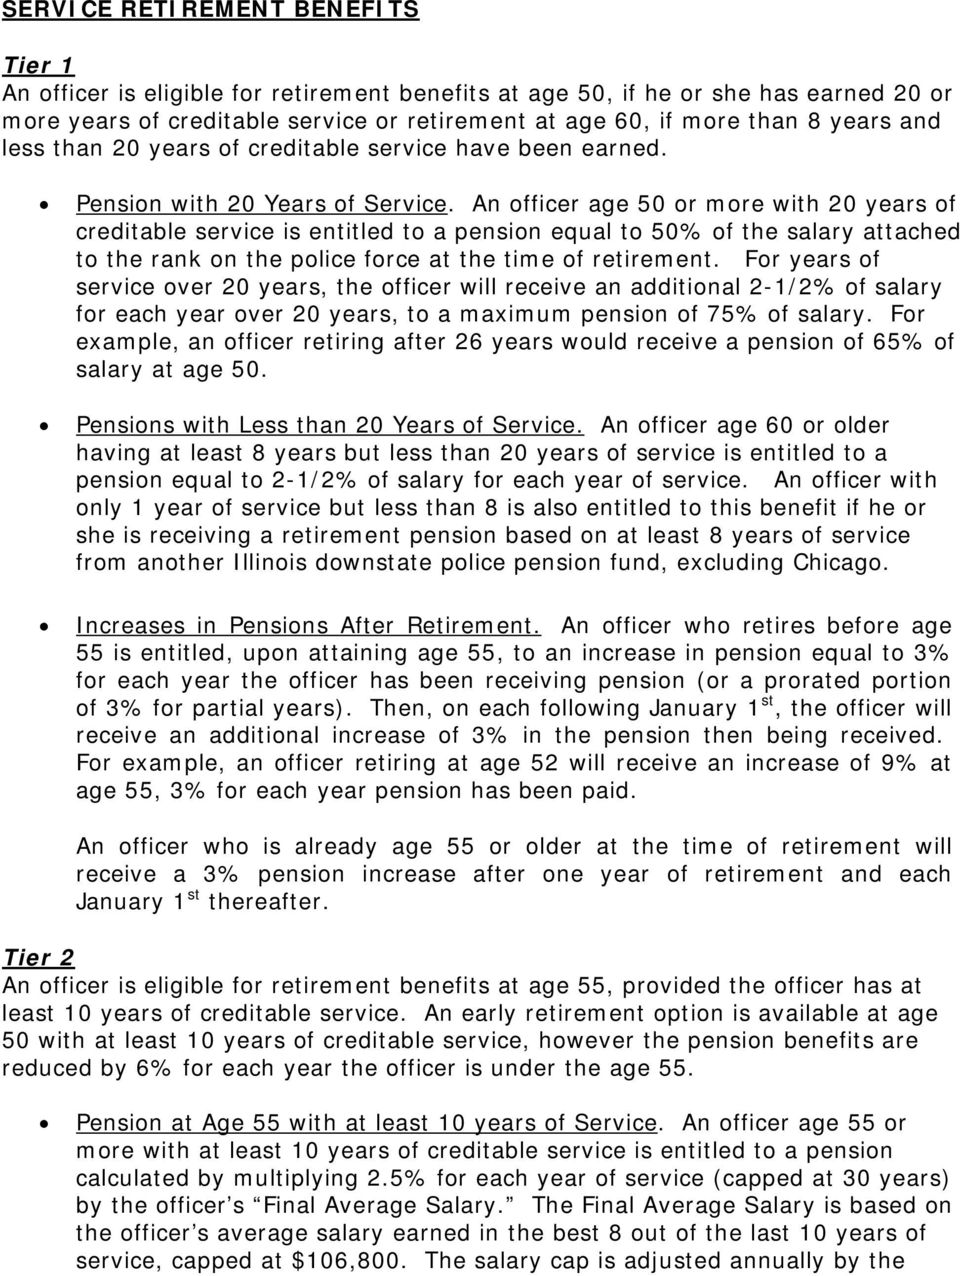 An officer age 50 or more with 20 years of creditable service is entitled to a pension equal to 50% of the salary attached to the rank on the police force at the time of retirement.